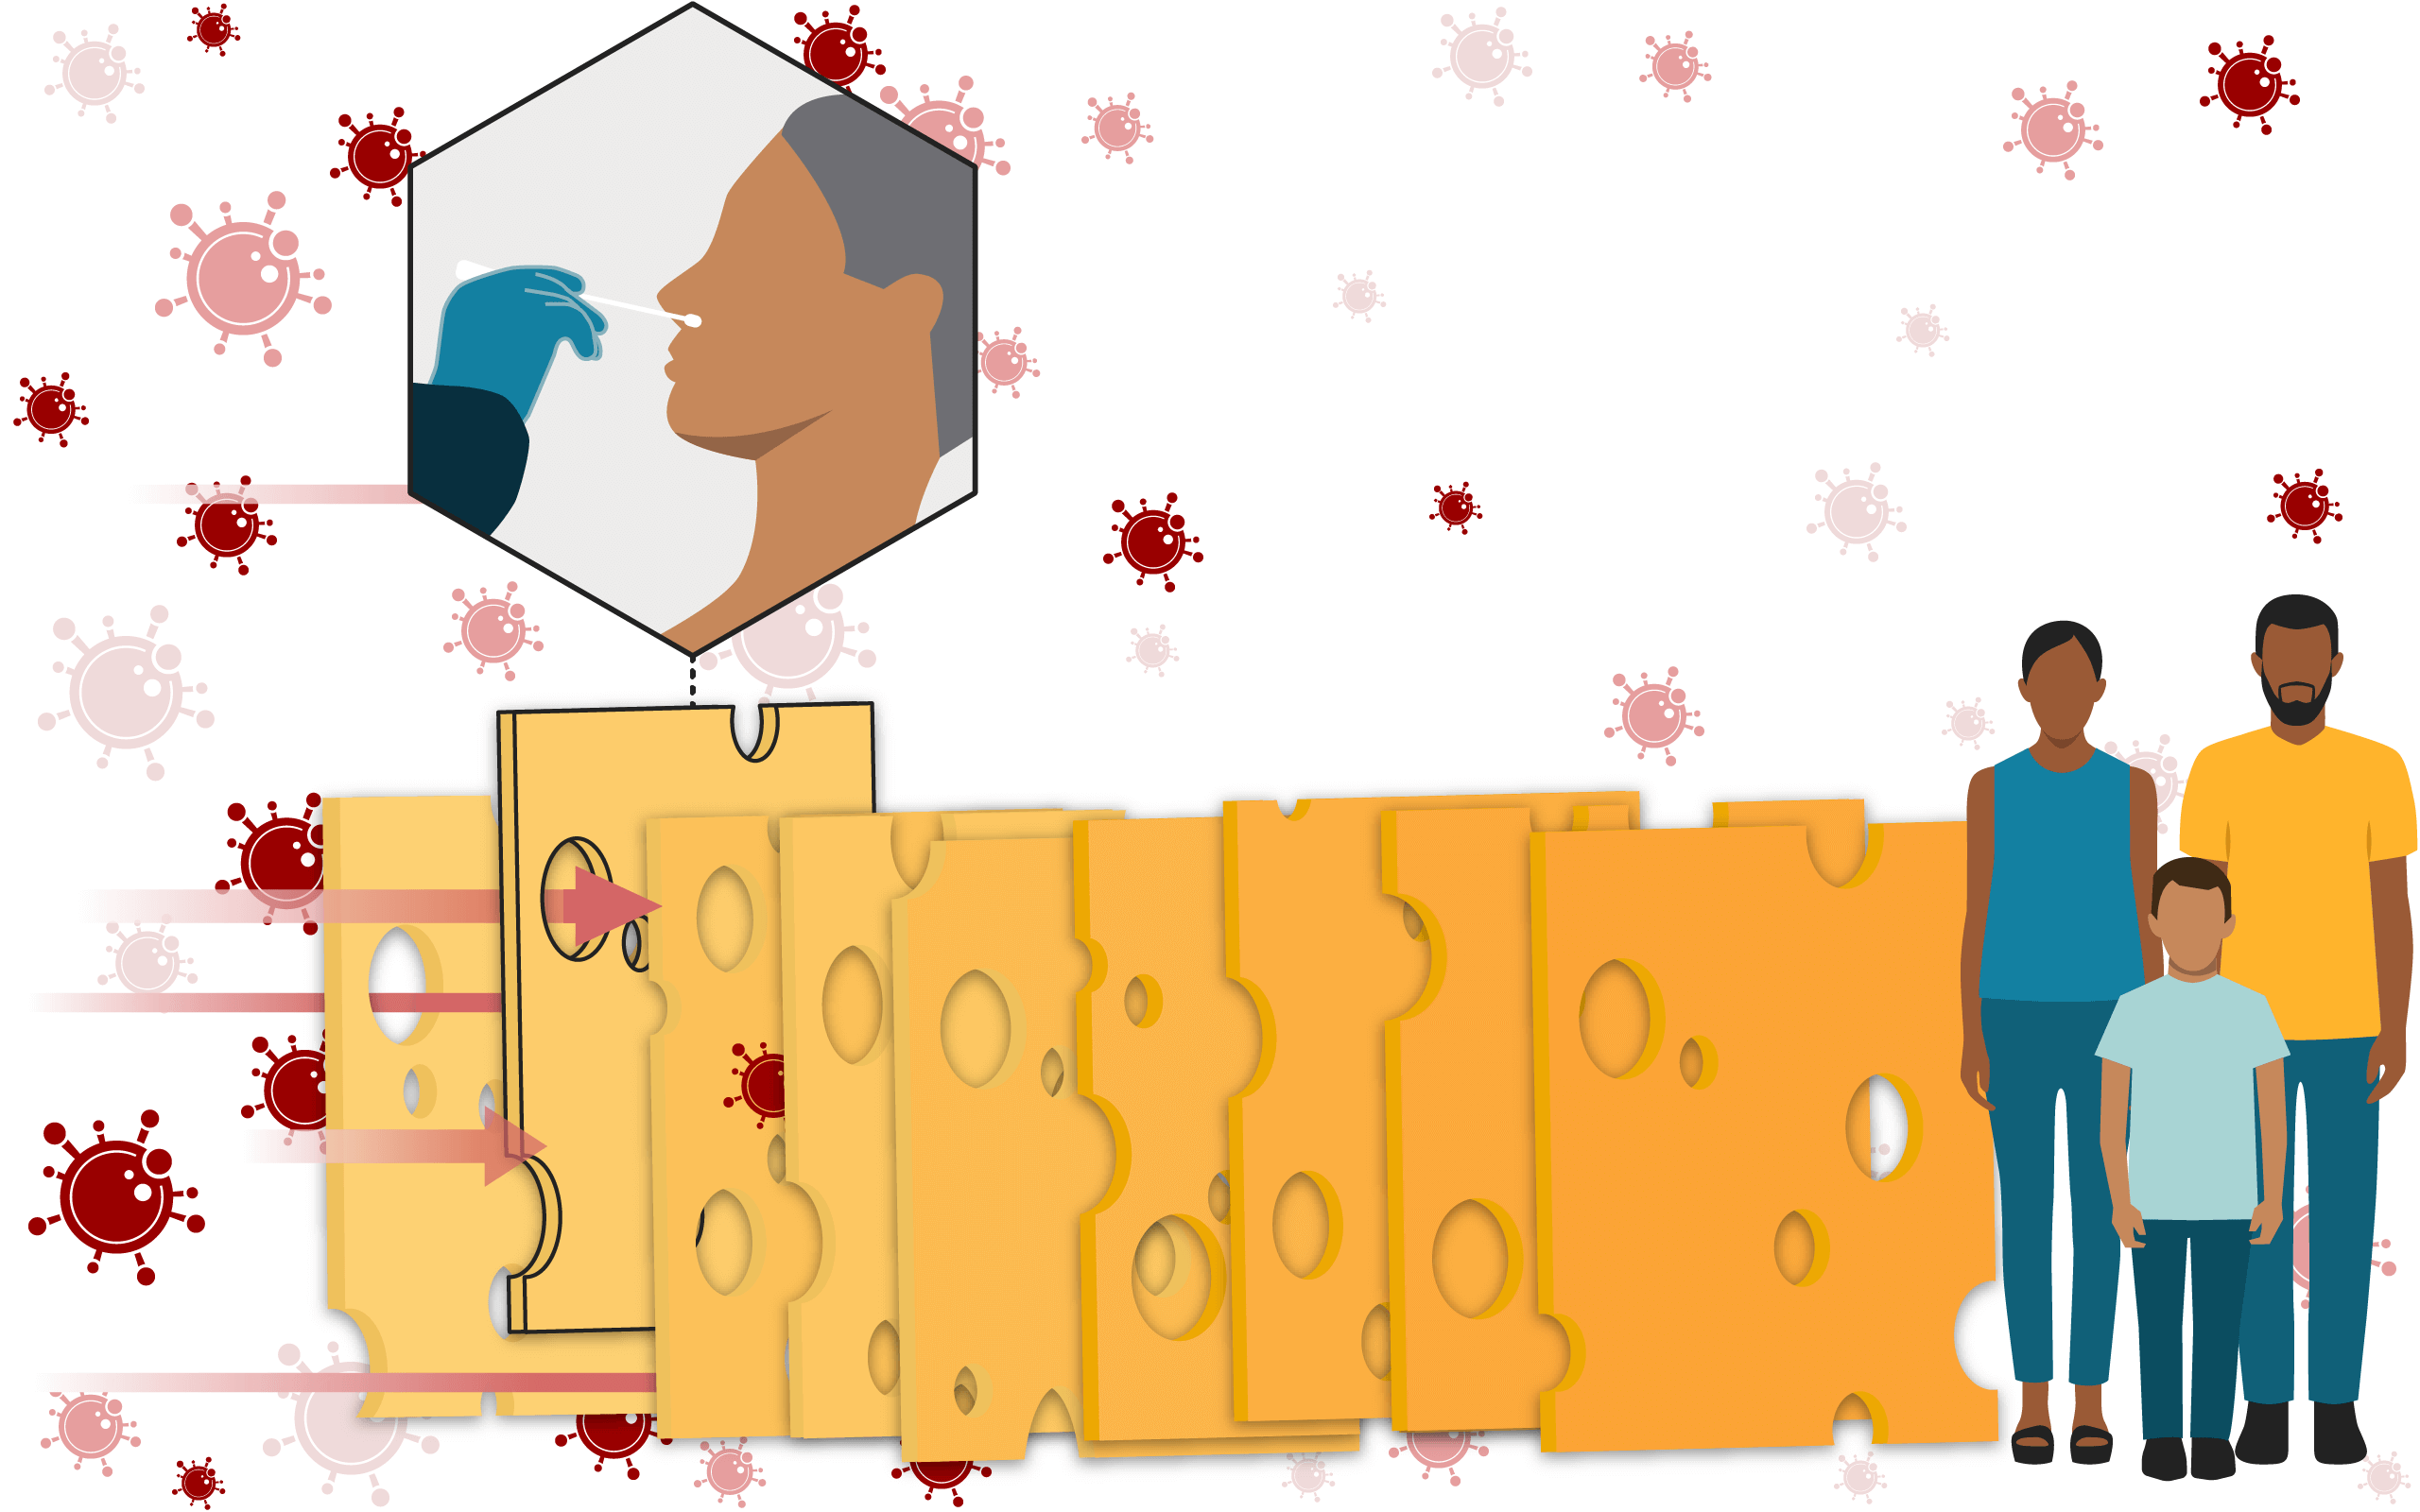 Illustration of a Swiss cheese, with a slice highlighted, representing testing